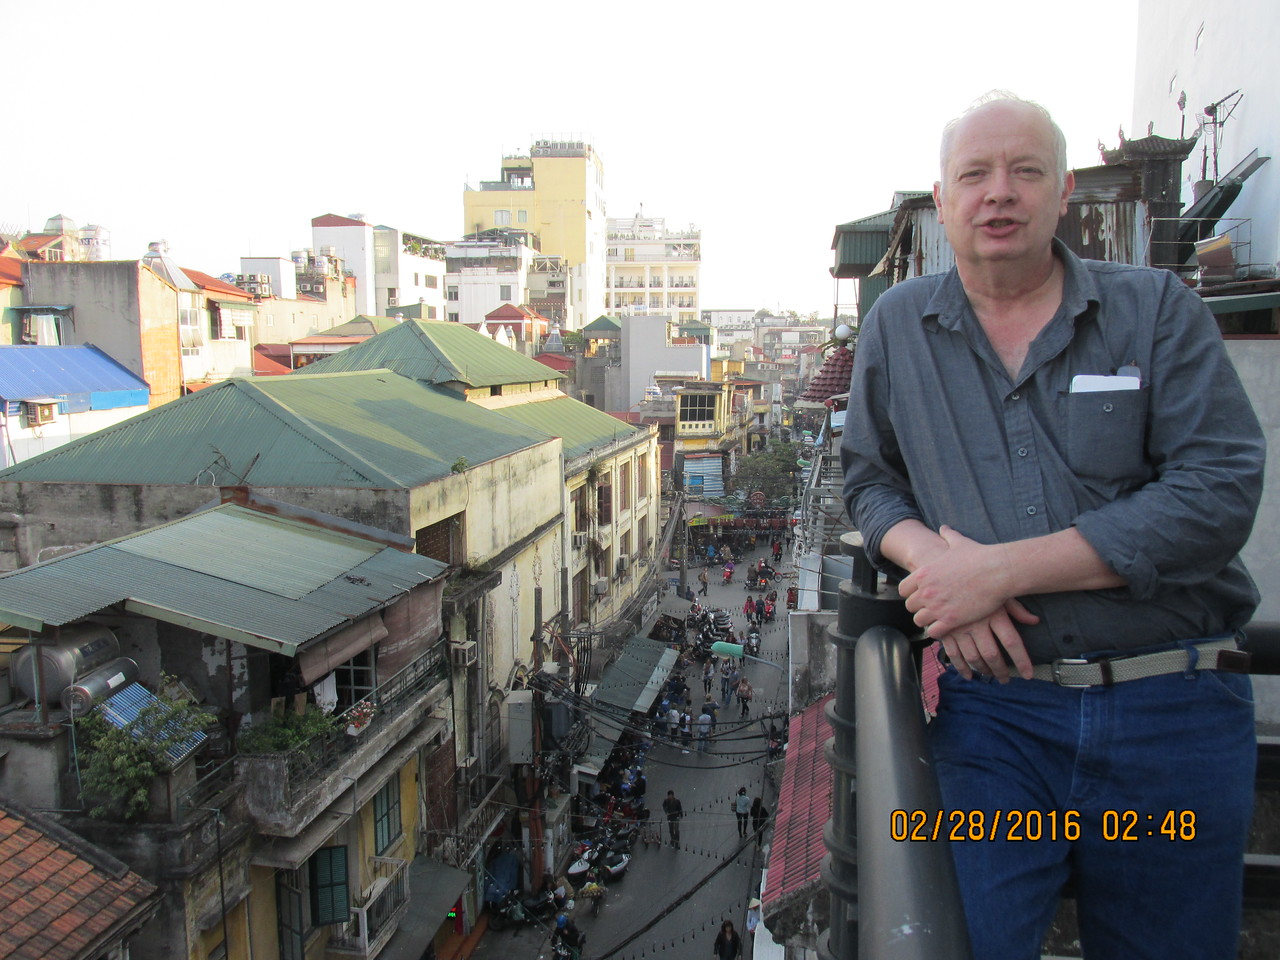 0031 - Brian on Balcony of Essence d'Orient Hotel overlooking Ta Hiem St in Old Quarter - Hanoi Vietnam - Date Correct Time on Pic is Wrong